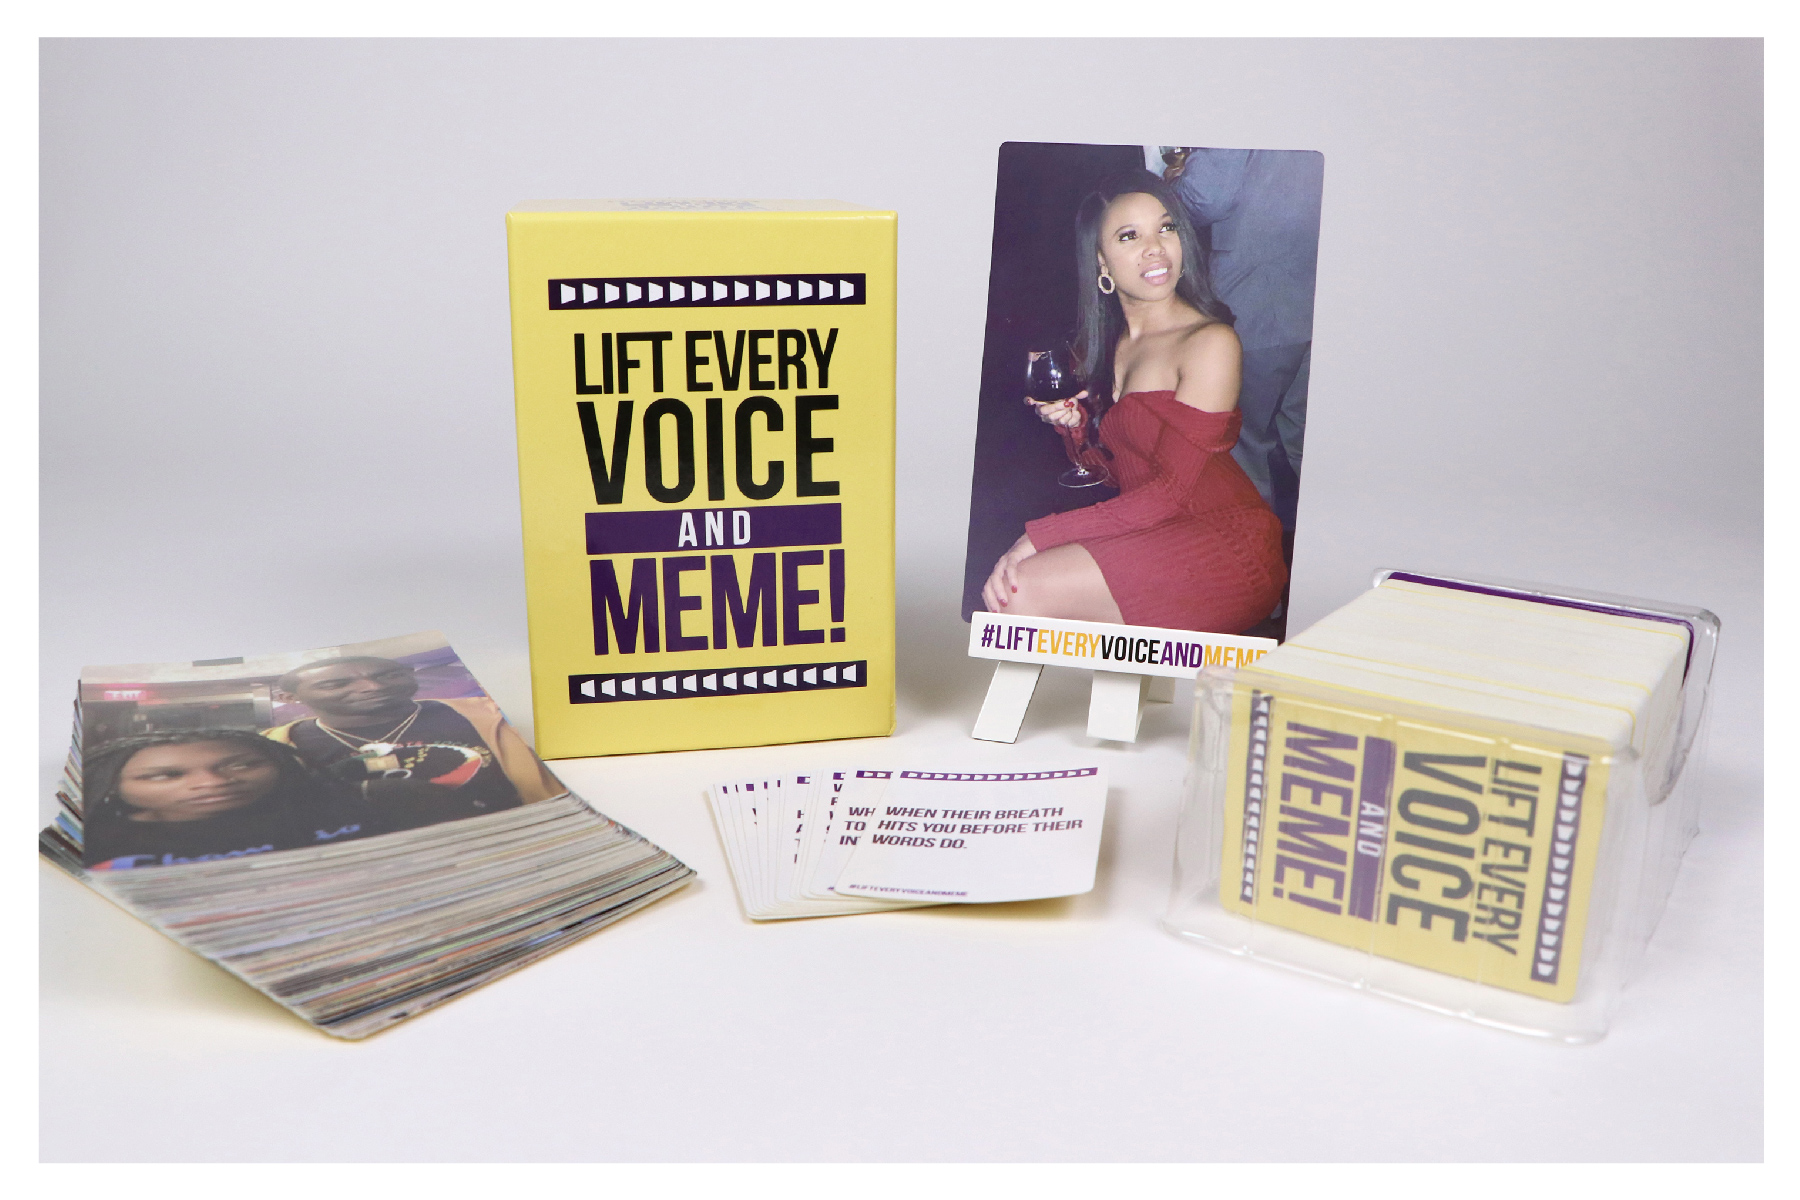 Lift Every Voice And Meme